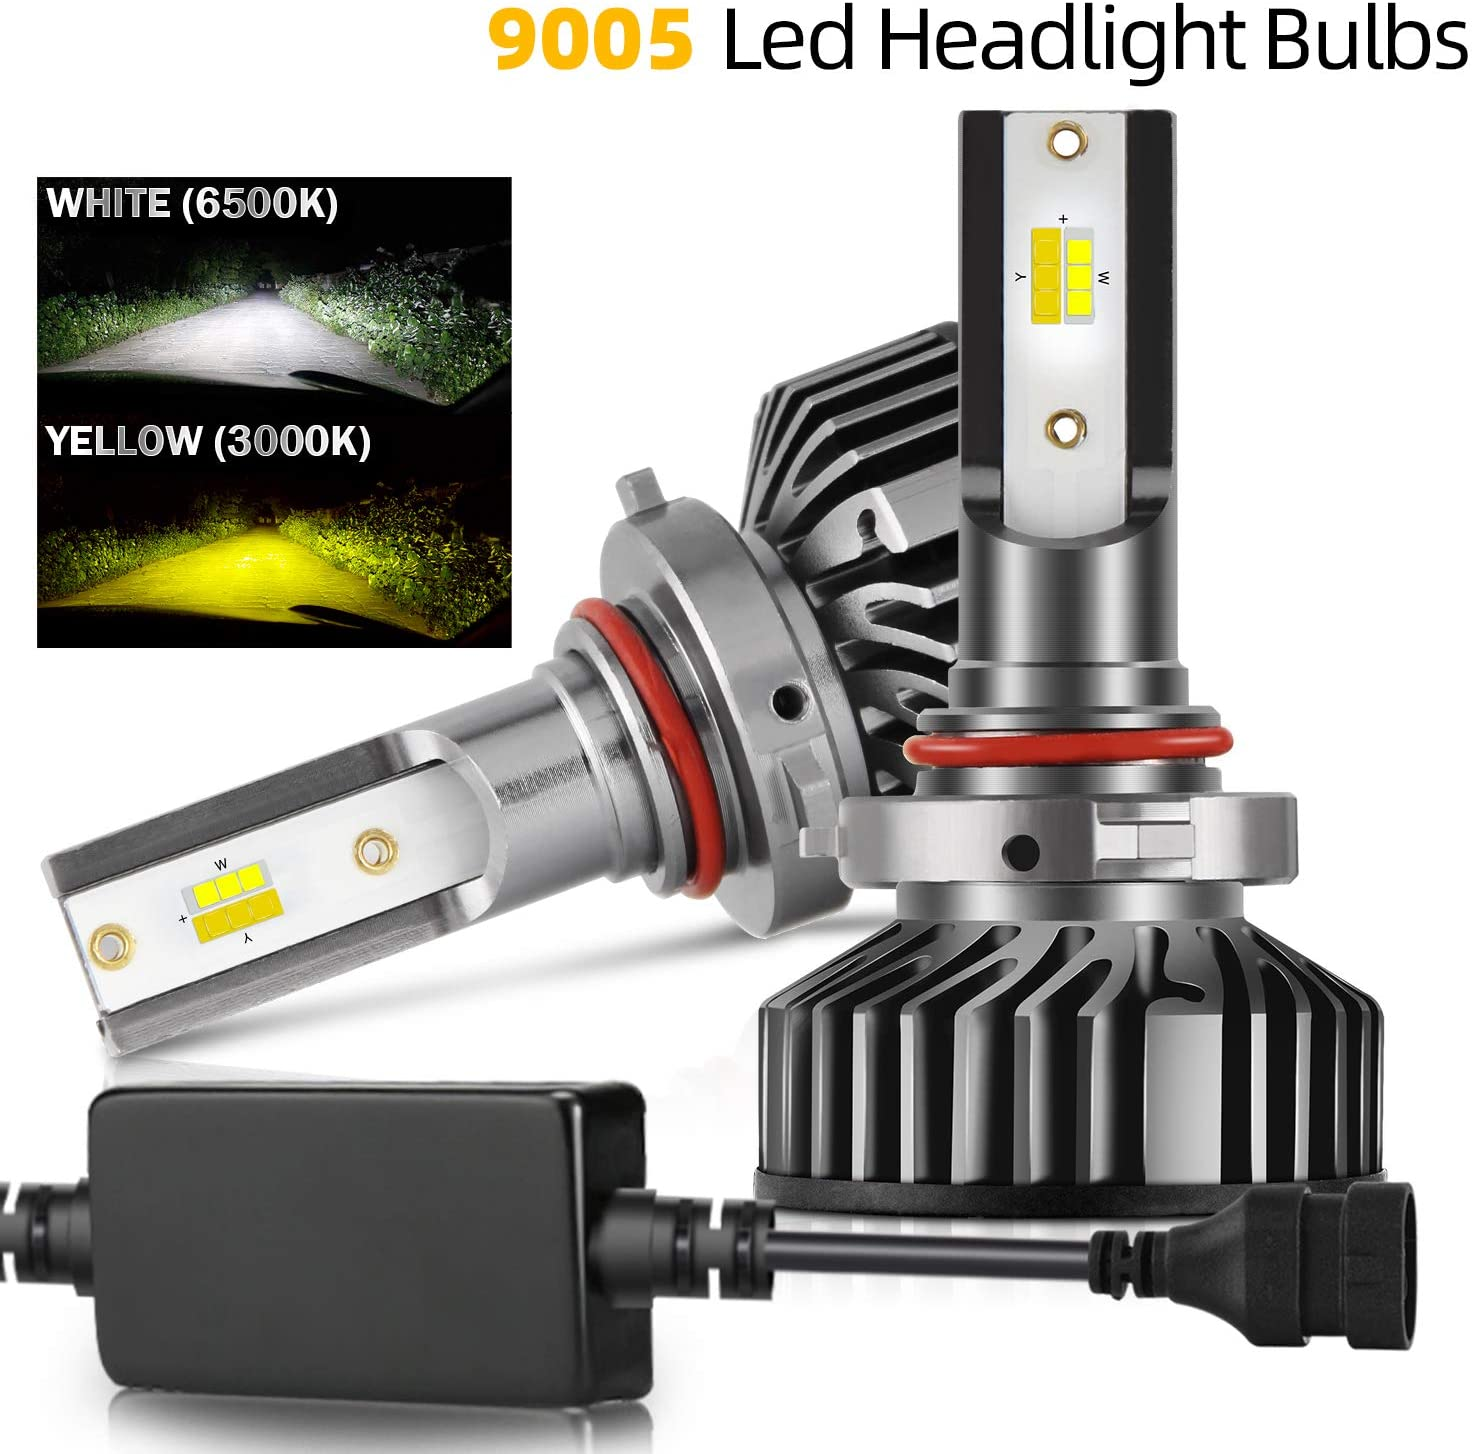 COLIGHT LED Headlight Bulbs Conversion Replacements Yellow Amber 3000K White 6000K Dual Color Temperature 72W 12000lumens Hi/Lo Beam DRL Waterproof ZES Chips Fog Lights (9005-F2D-SS)